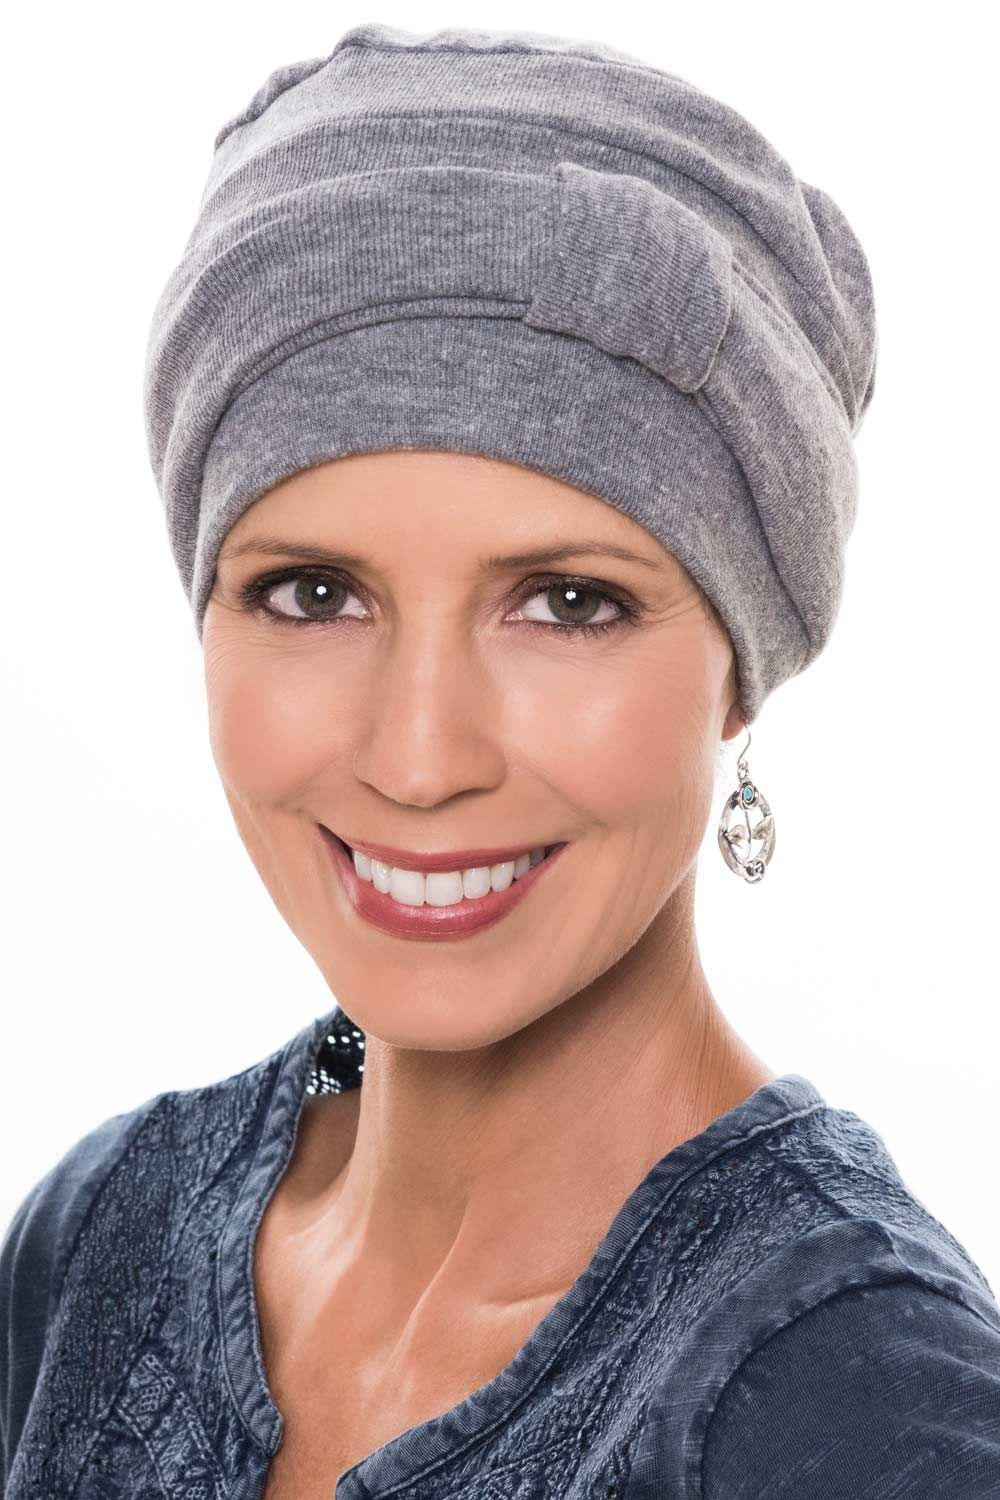 Avoid working out in wigs - try our Madison Exercise set!